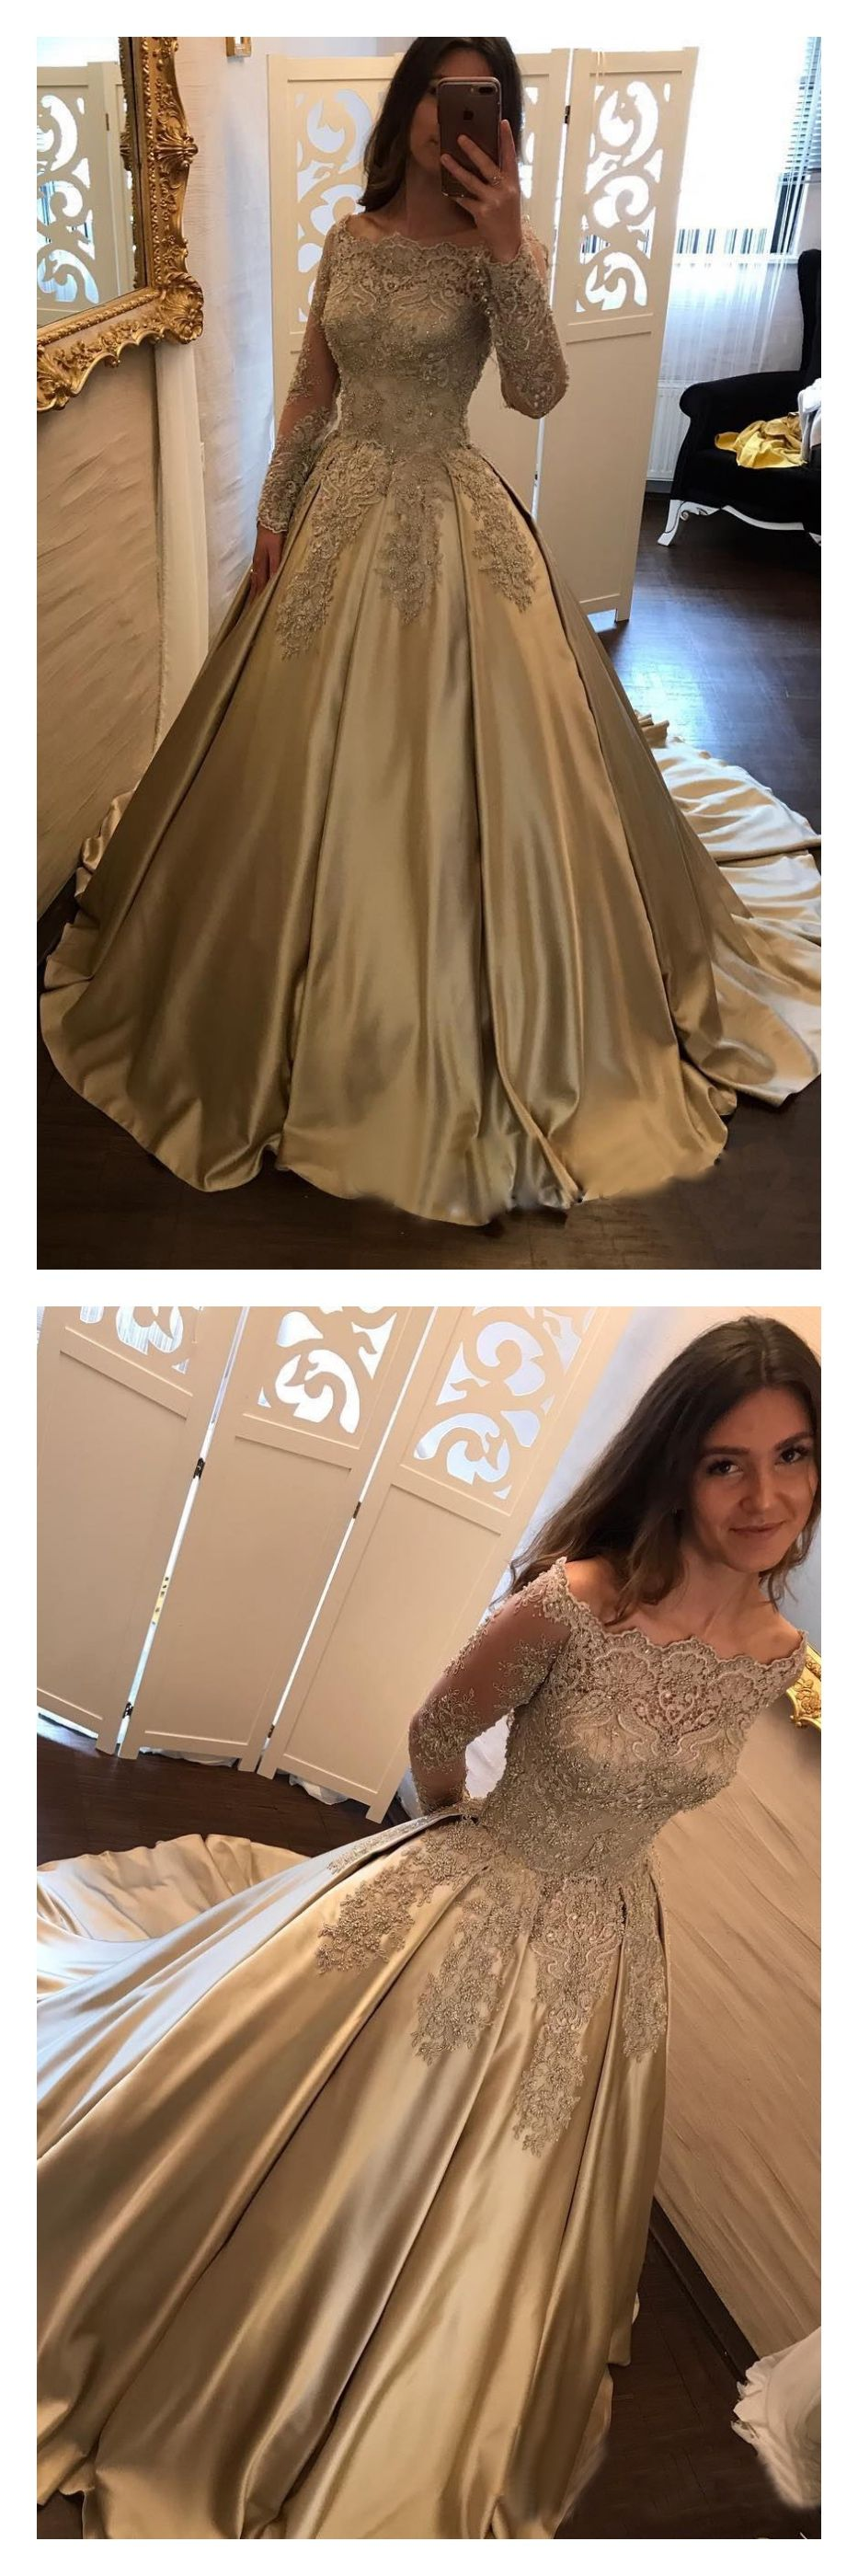 Elegant Champagne Lace Prom Dresses with Long SleevesED